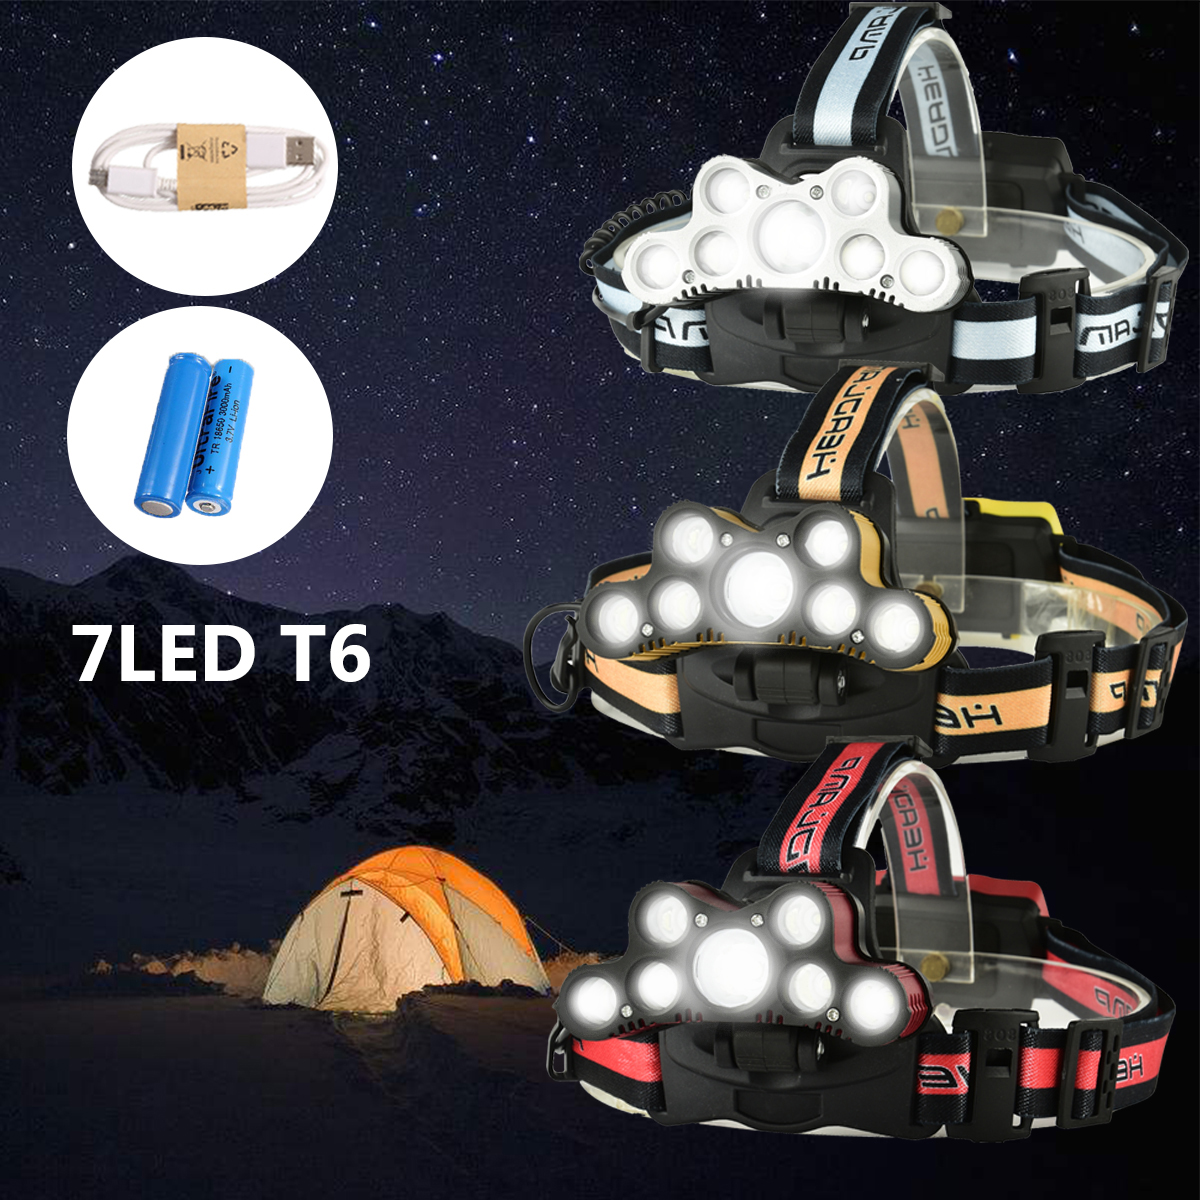 5000Lumens USB Rechargeable Headlight Headlight 5x T6 LED Head Torch 5 Modes +18650 Battery with SOS Help Whistle